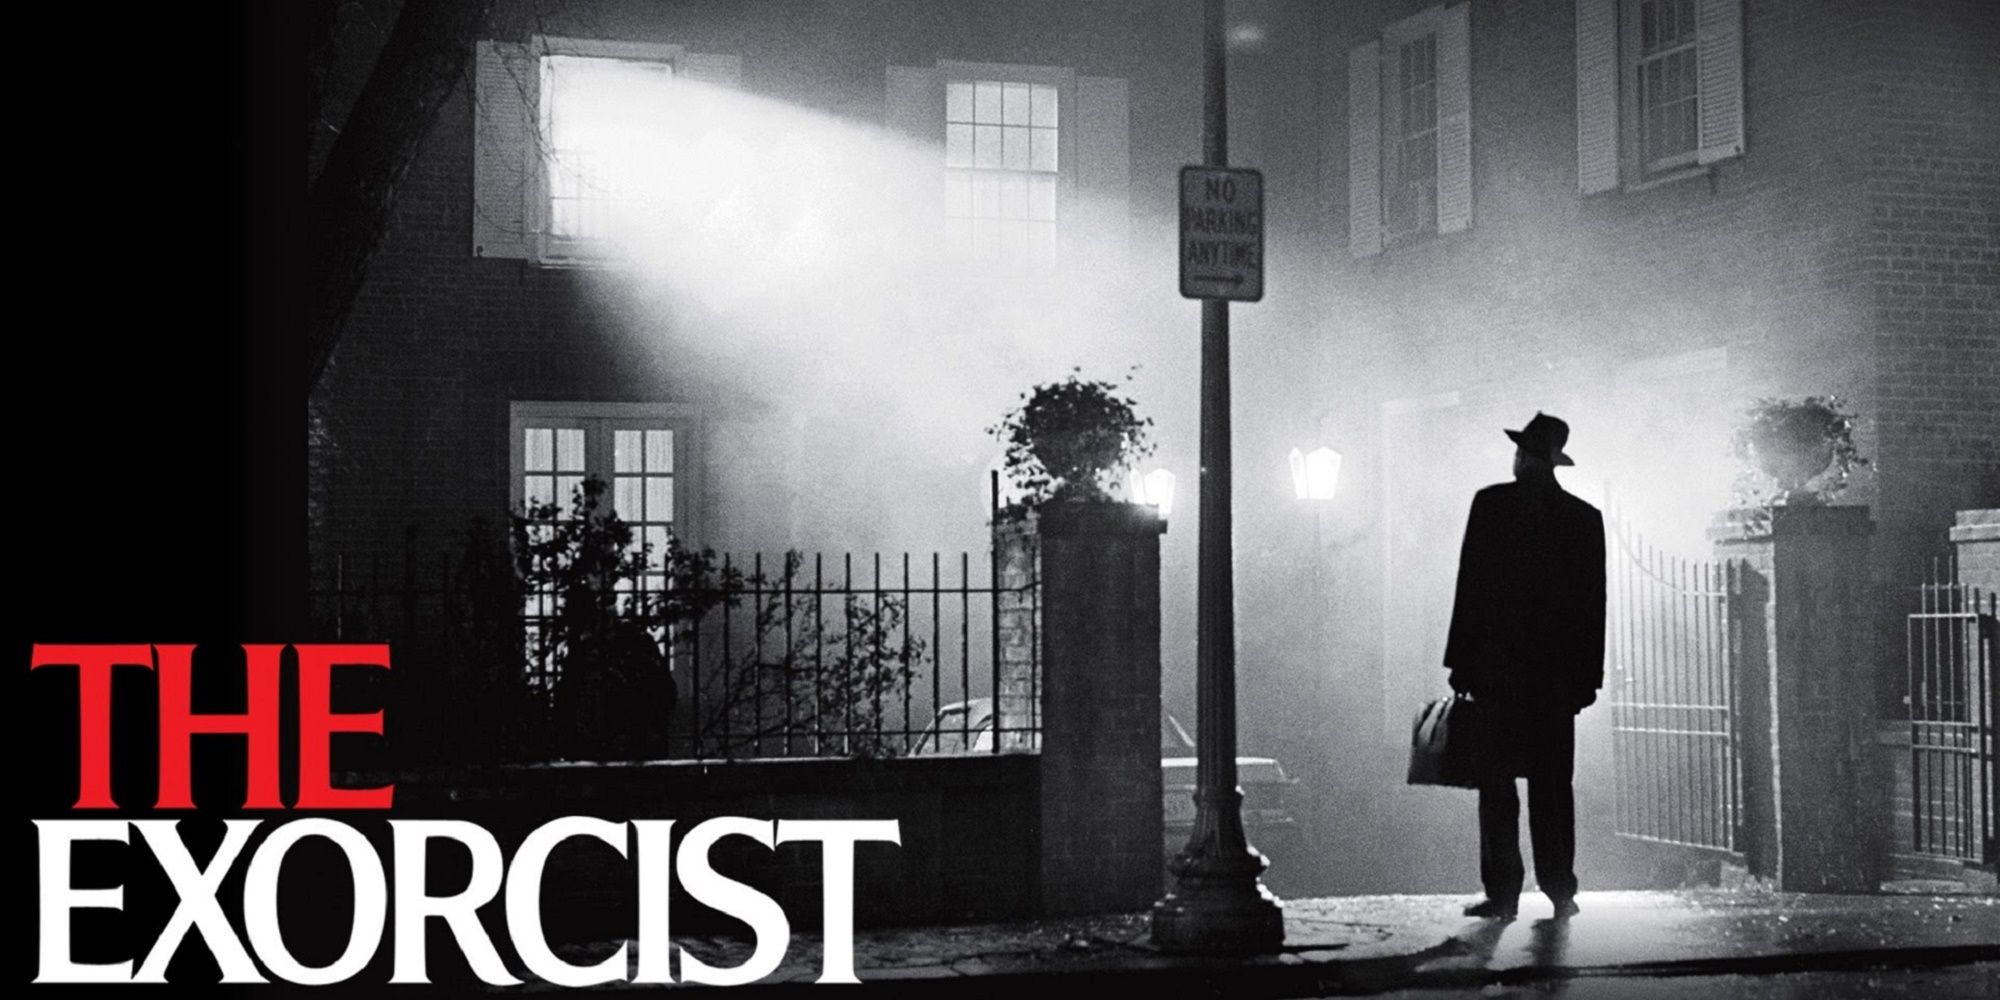 Website to download full hd movies the exorcist in the 21st.